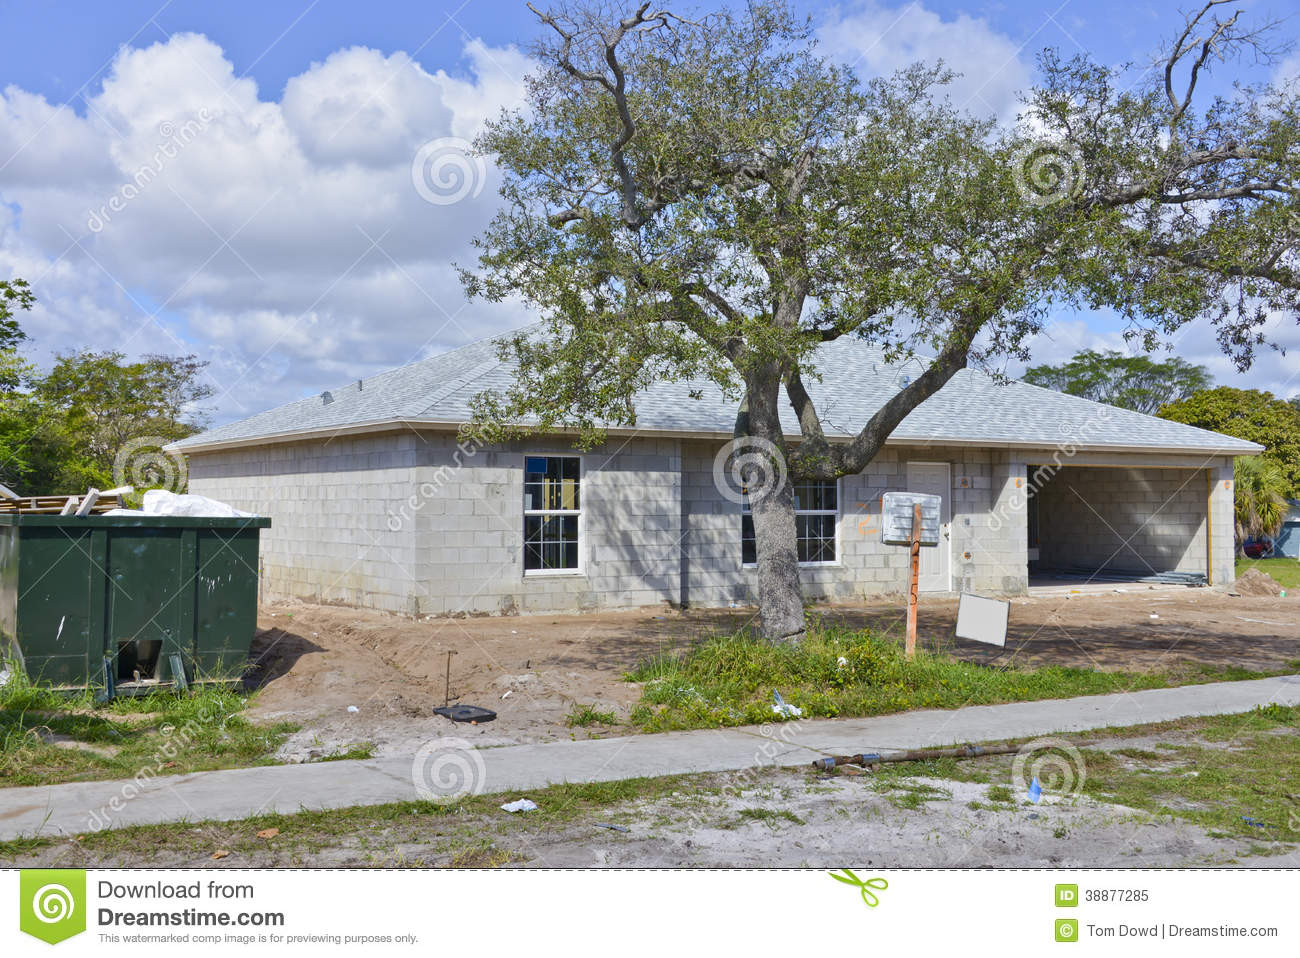 Family home under construction stock image image 38877285 for Cbs concrete